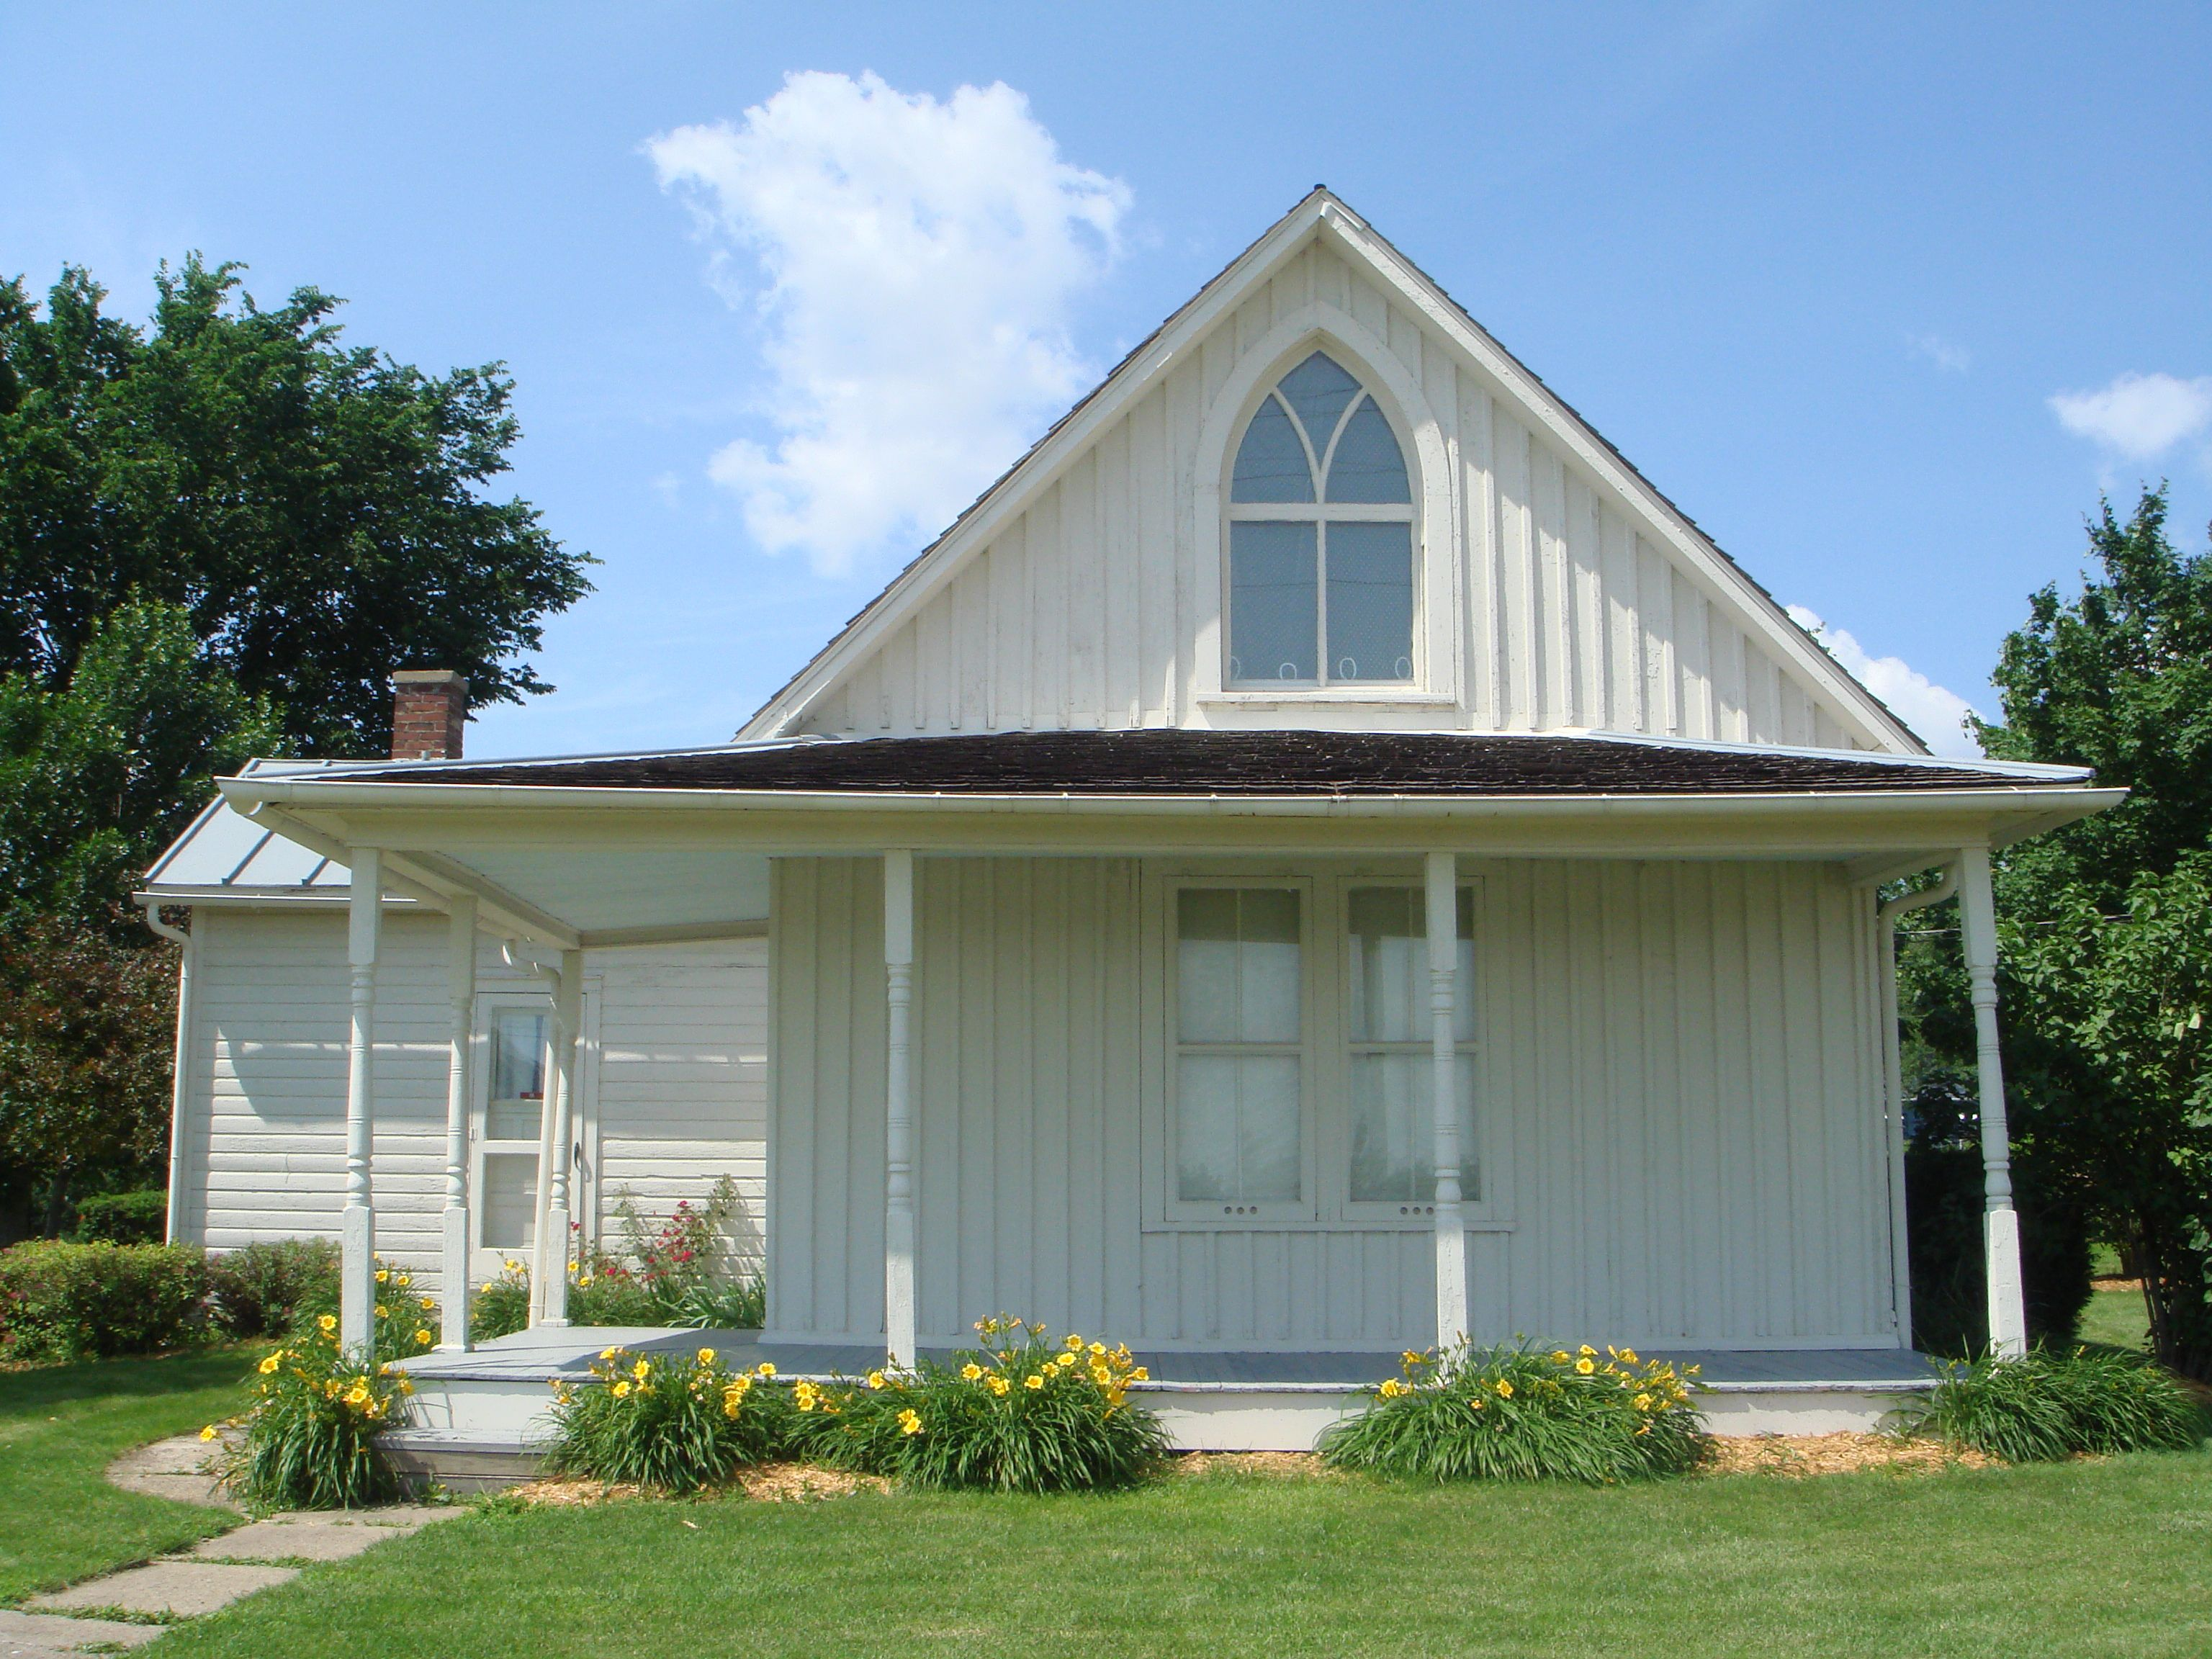 American Gothic House Wikipedia The Free Encyclopedia Gothic House American Gothic American Gothic House